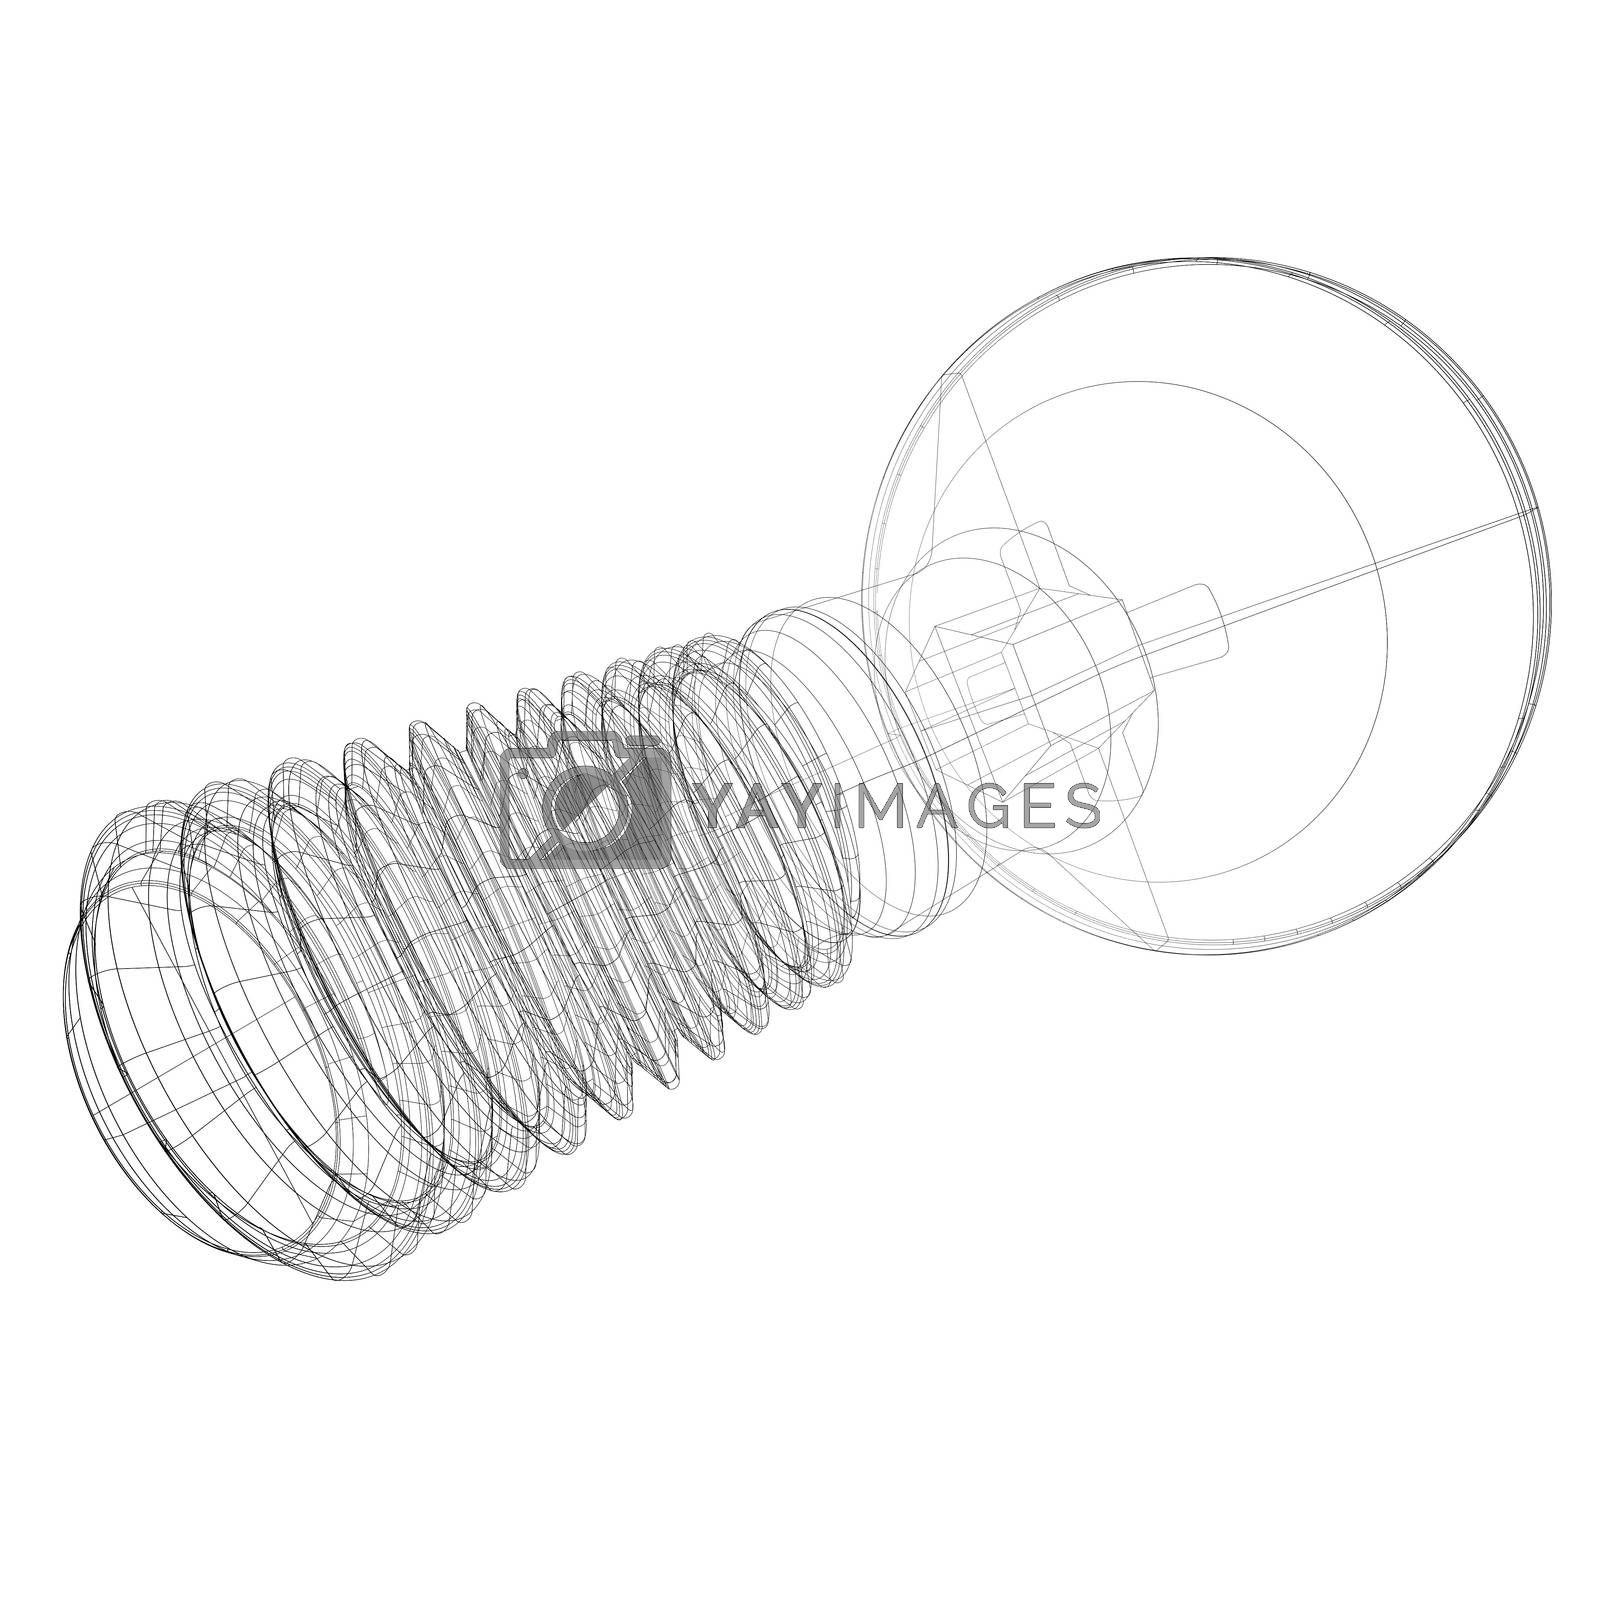 Royalty free image of Wire-frame screw by cherezoff